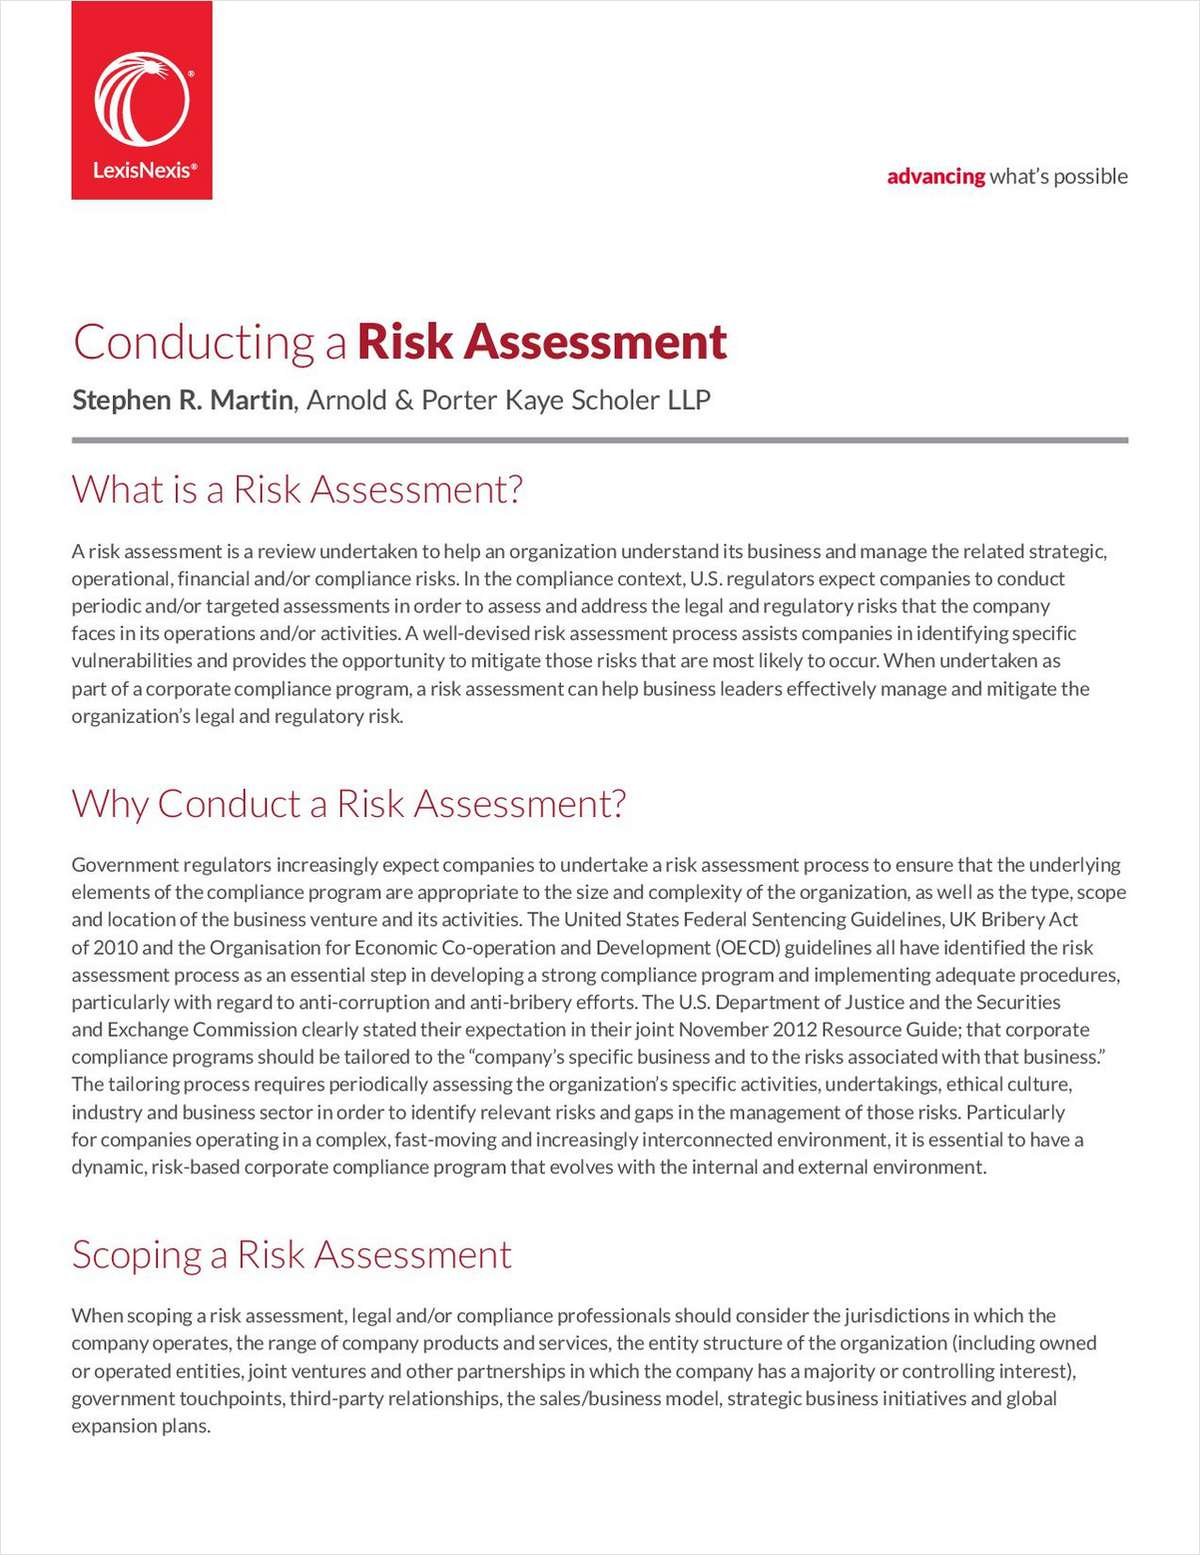 How to Conduct an Effective Risk Assessment